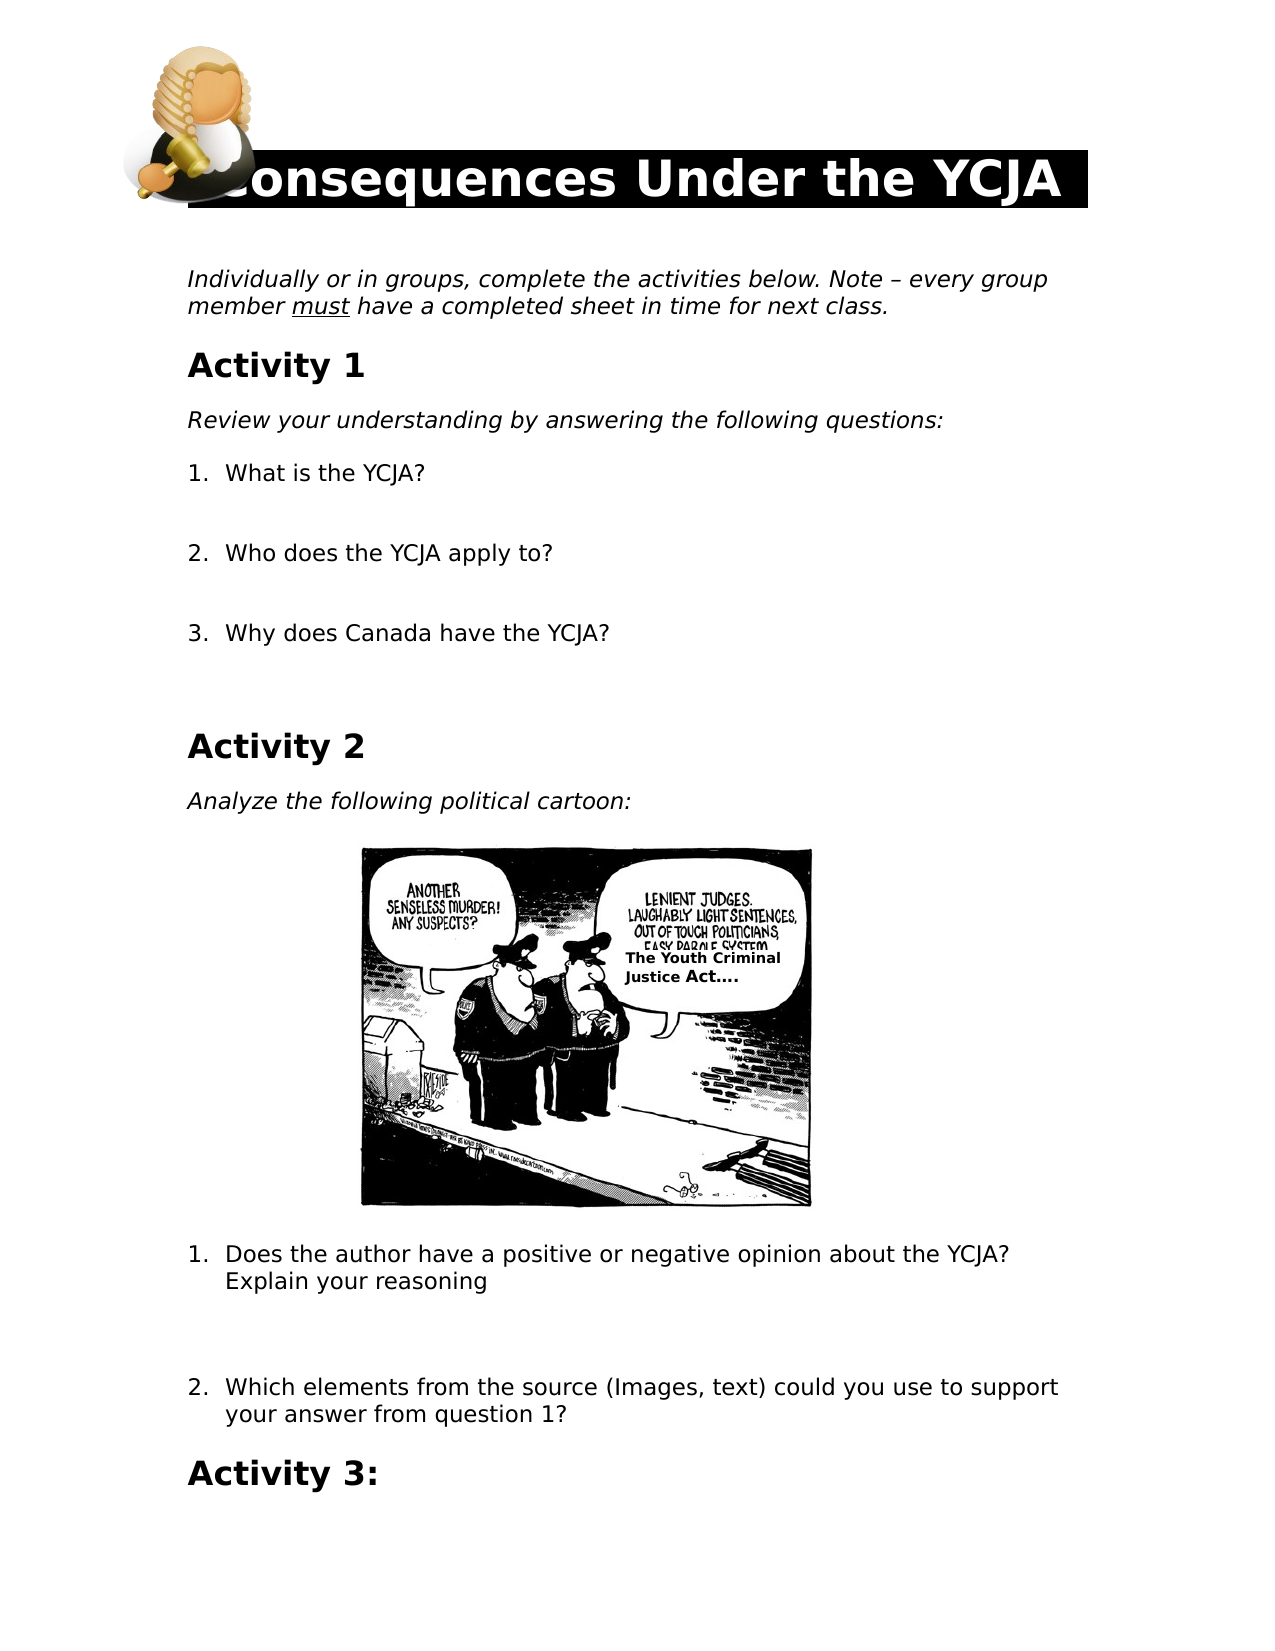 Consequences of the YCJA Activity Resource Preview